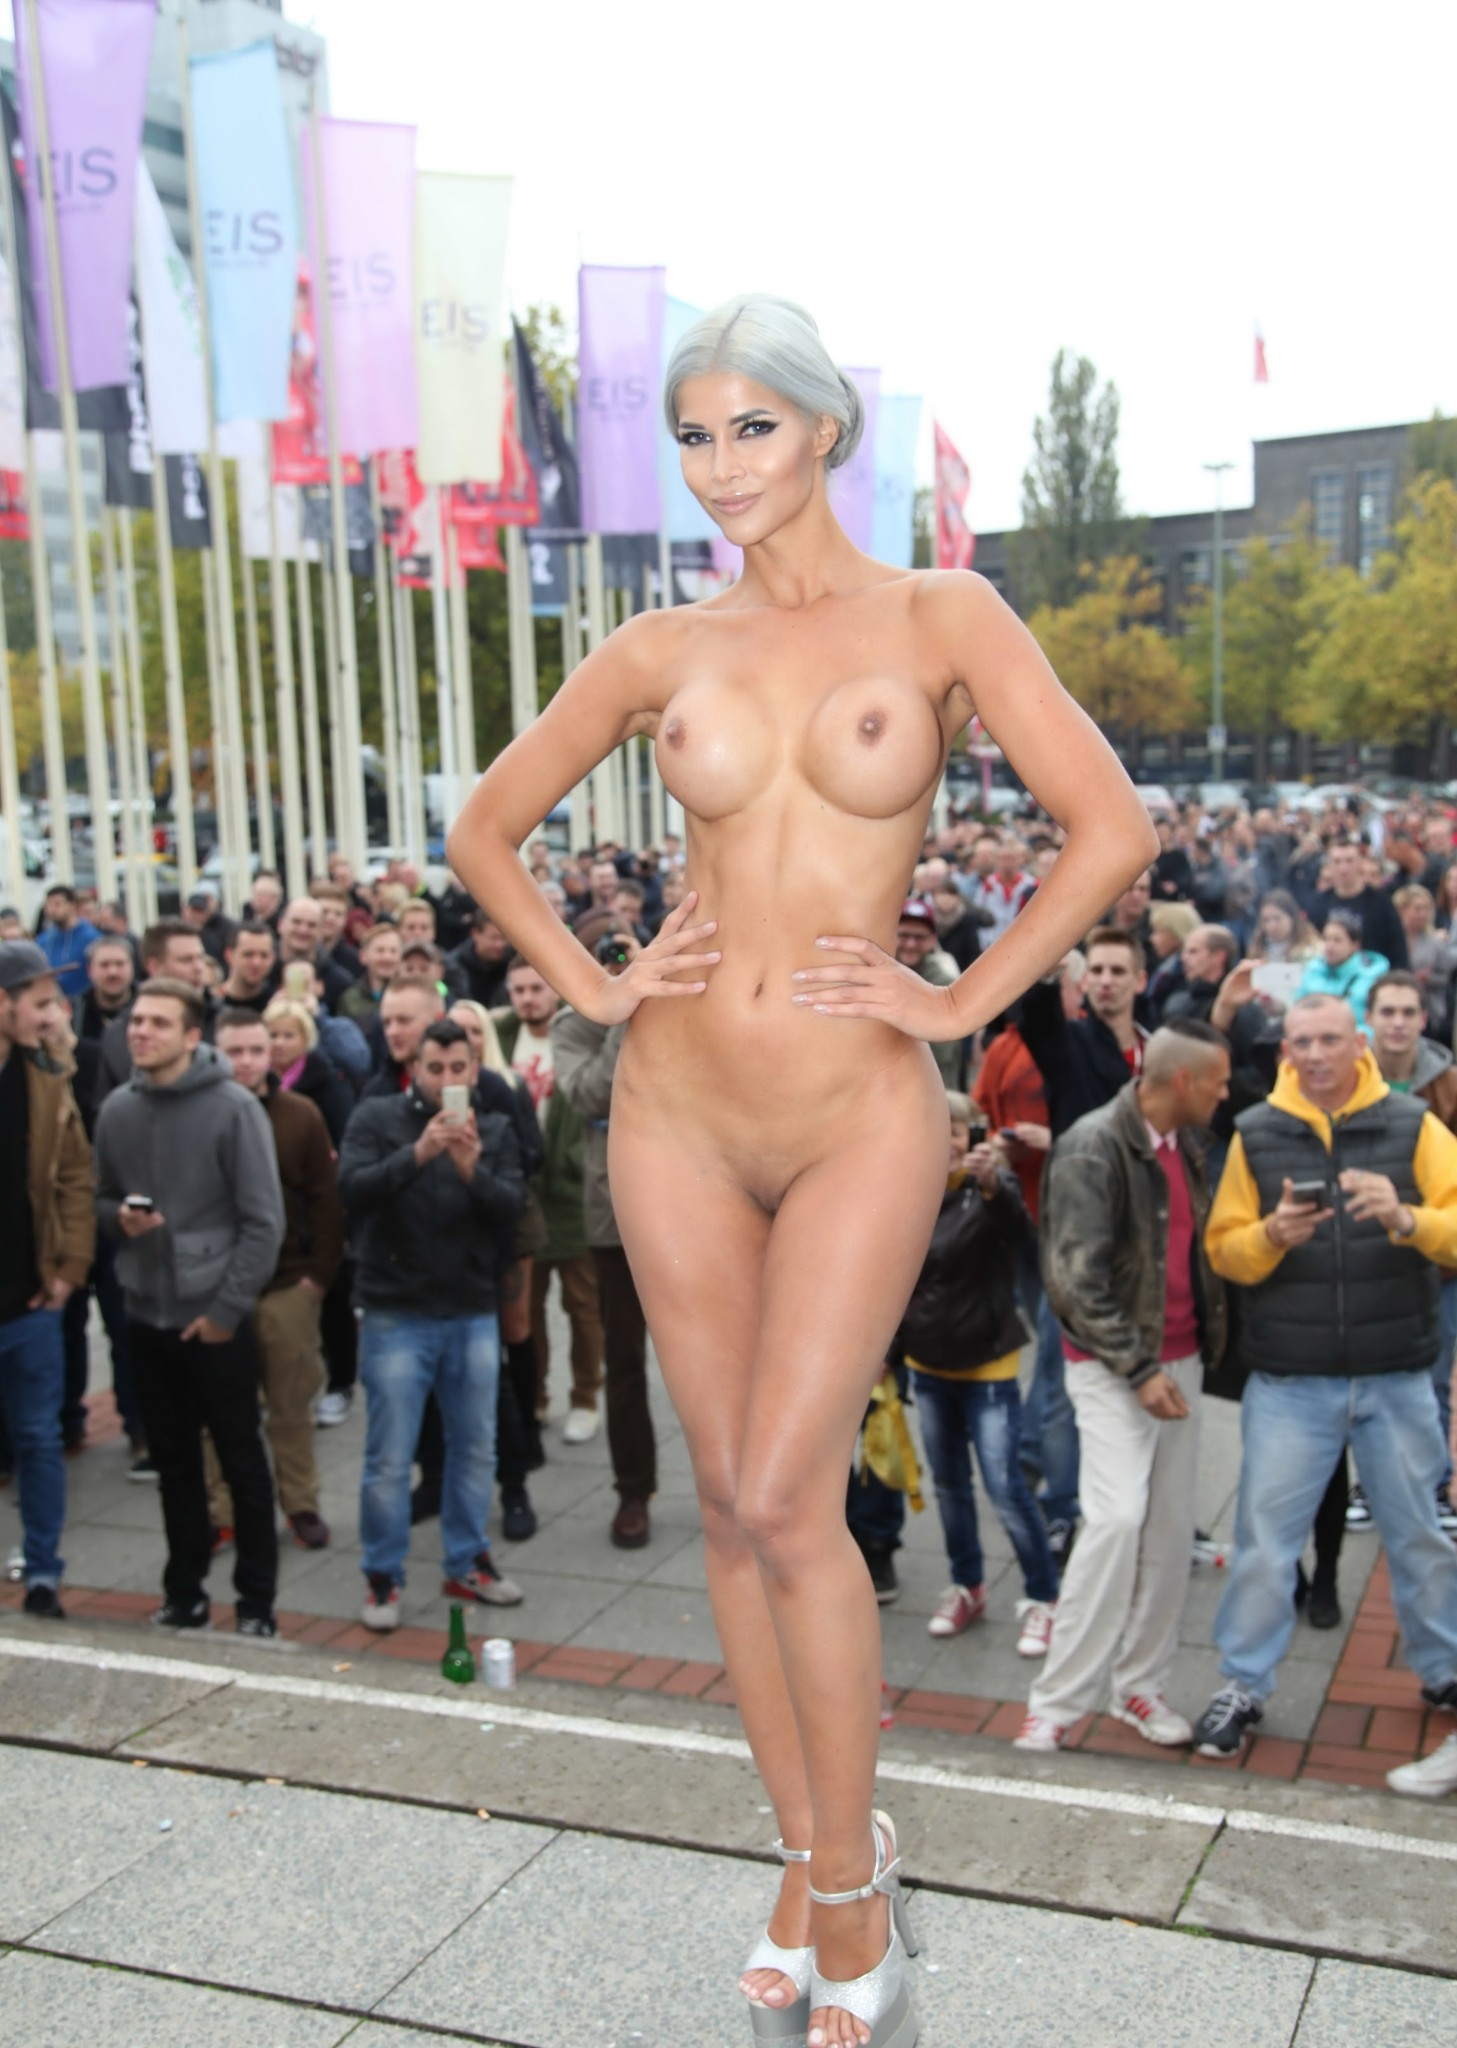 micaela-schaefer-nude-at-venus-2015-exhibition-opening-in-berlin-5